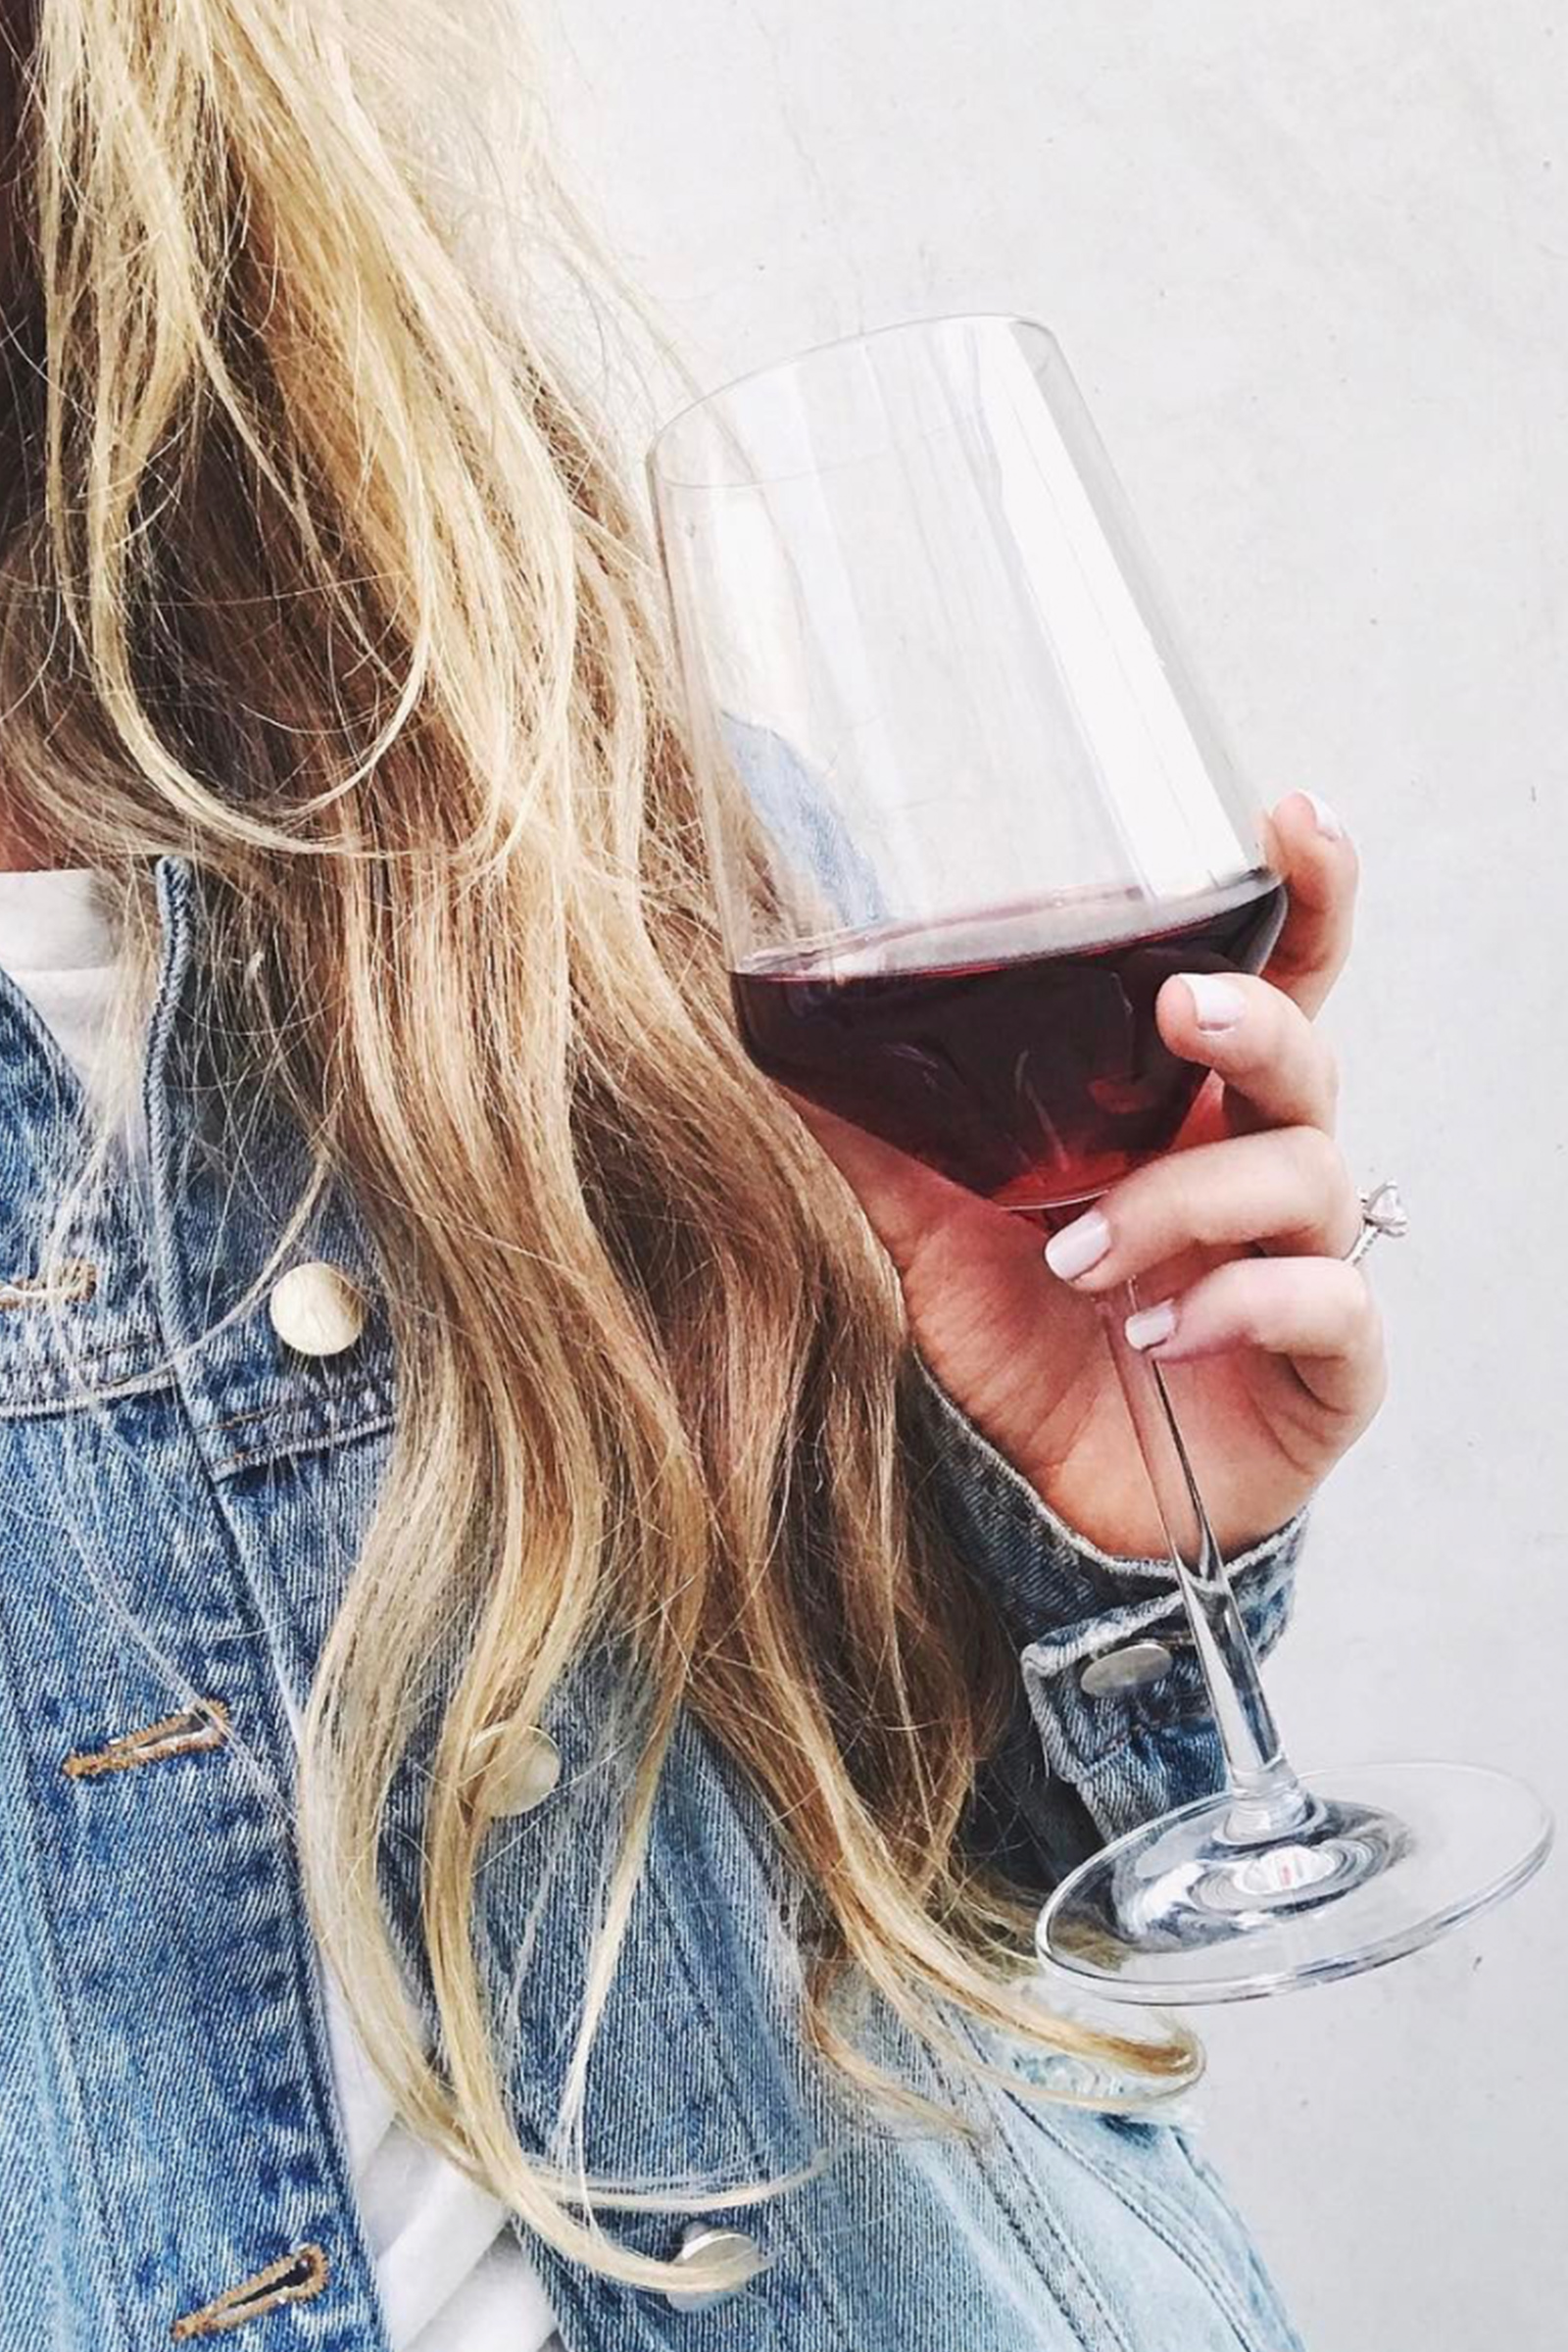 Selfie / Red Wine / Cheers Happy Hour / Instagram Photo Ideas / Kelly Fiance Creative